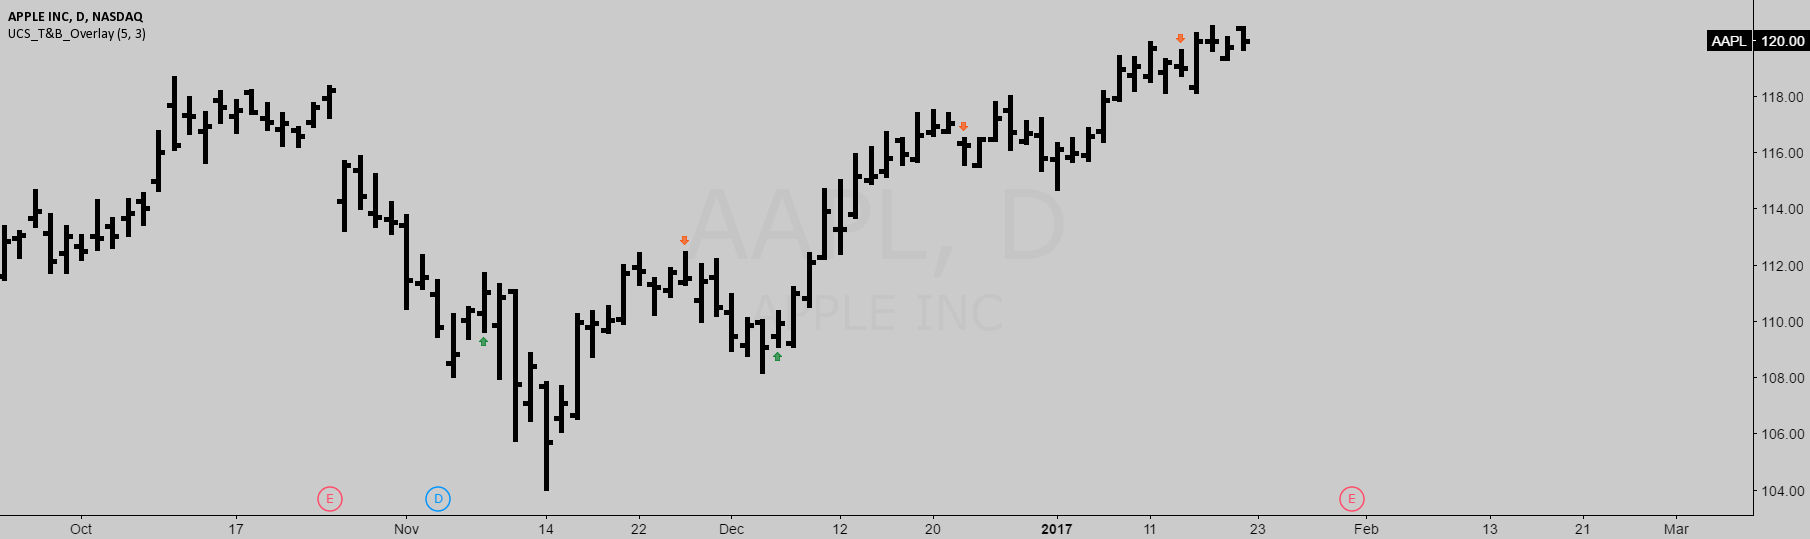 UCS_Top & Bottom Candle Arrows as an overlay